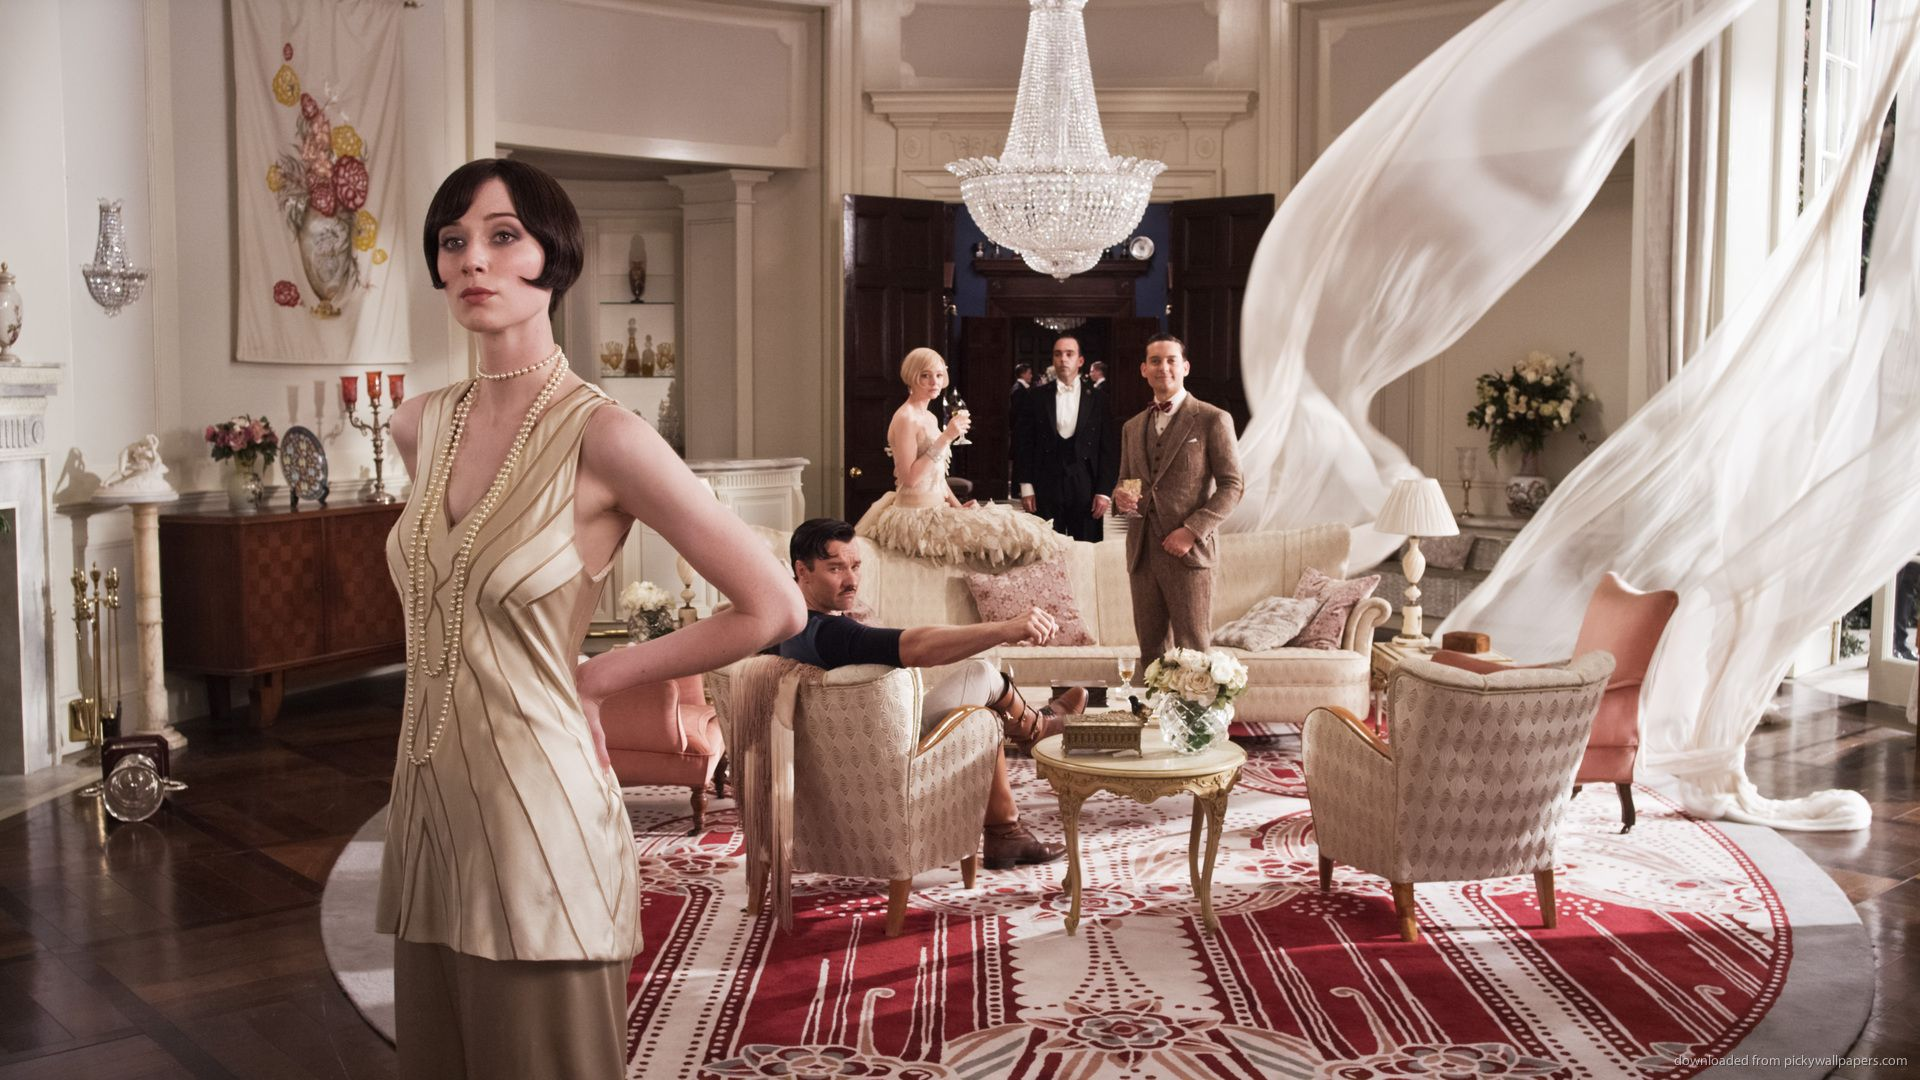 The Great Gatsby Wallpapers Images For Free